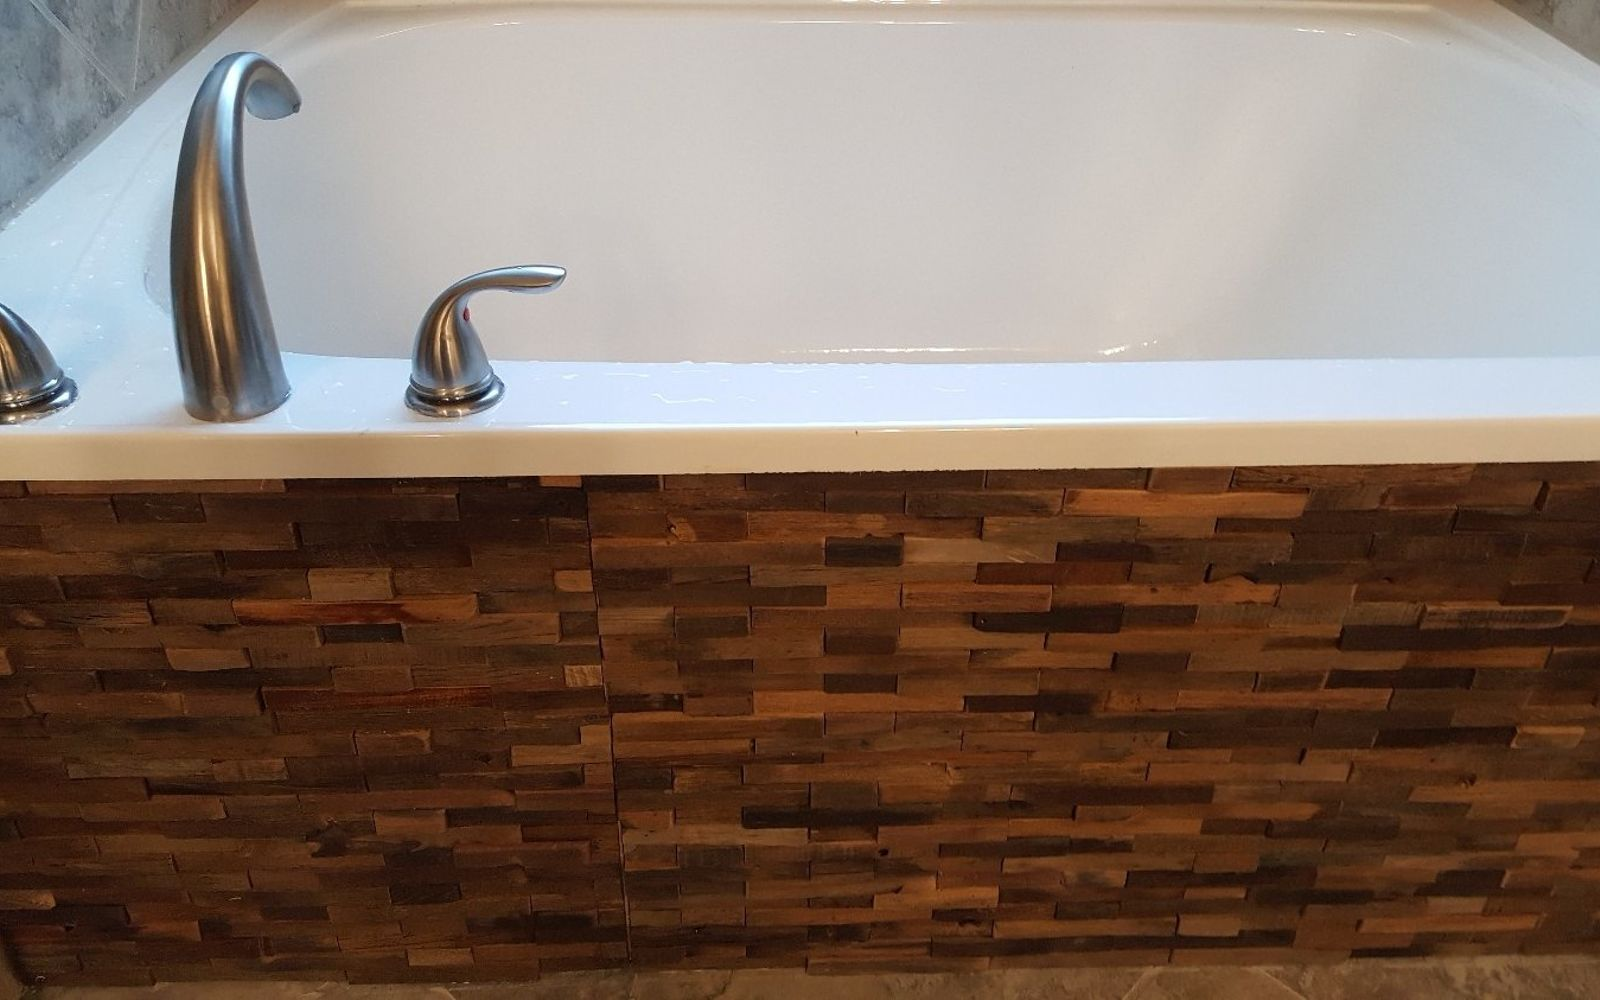 s 11 easy ways to refresh your old bathtub, Revamp The Bathtub